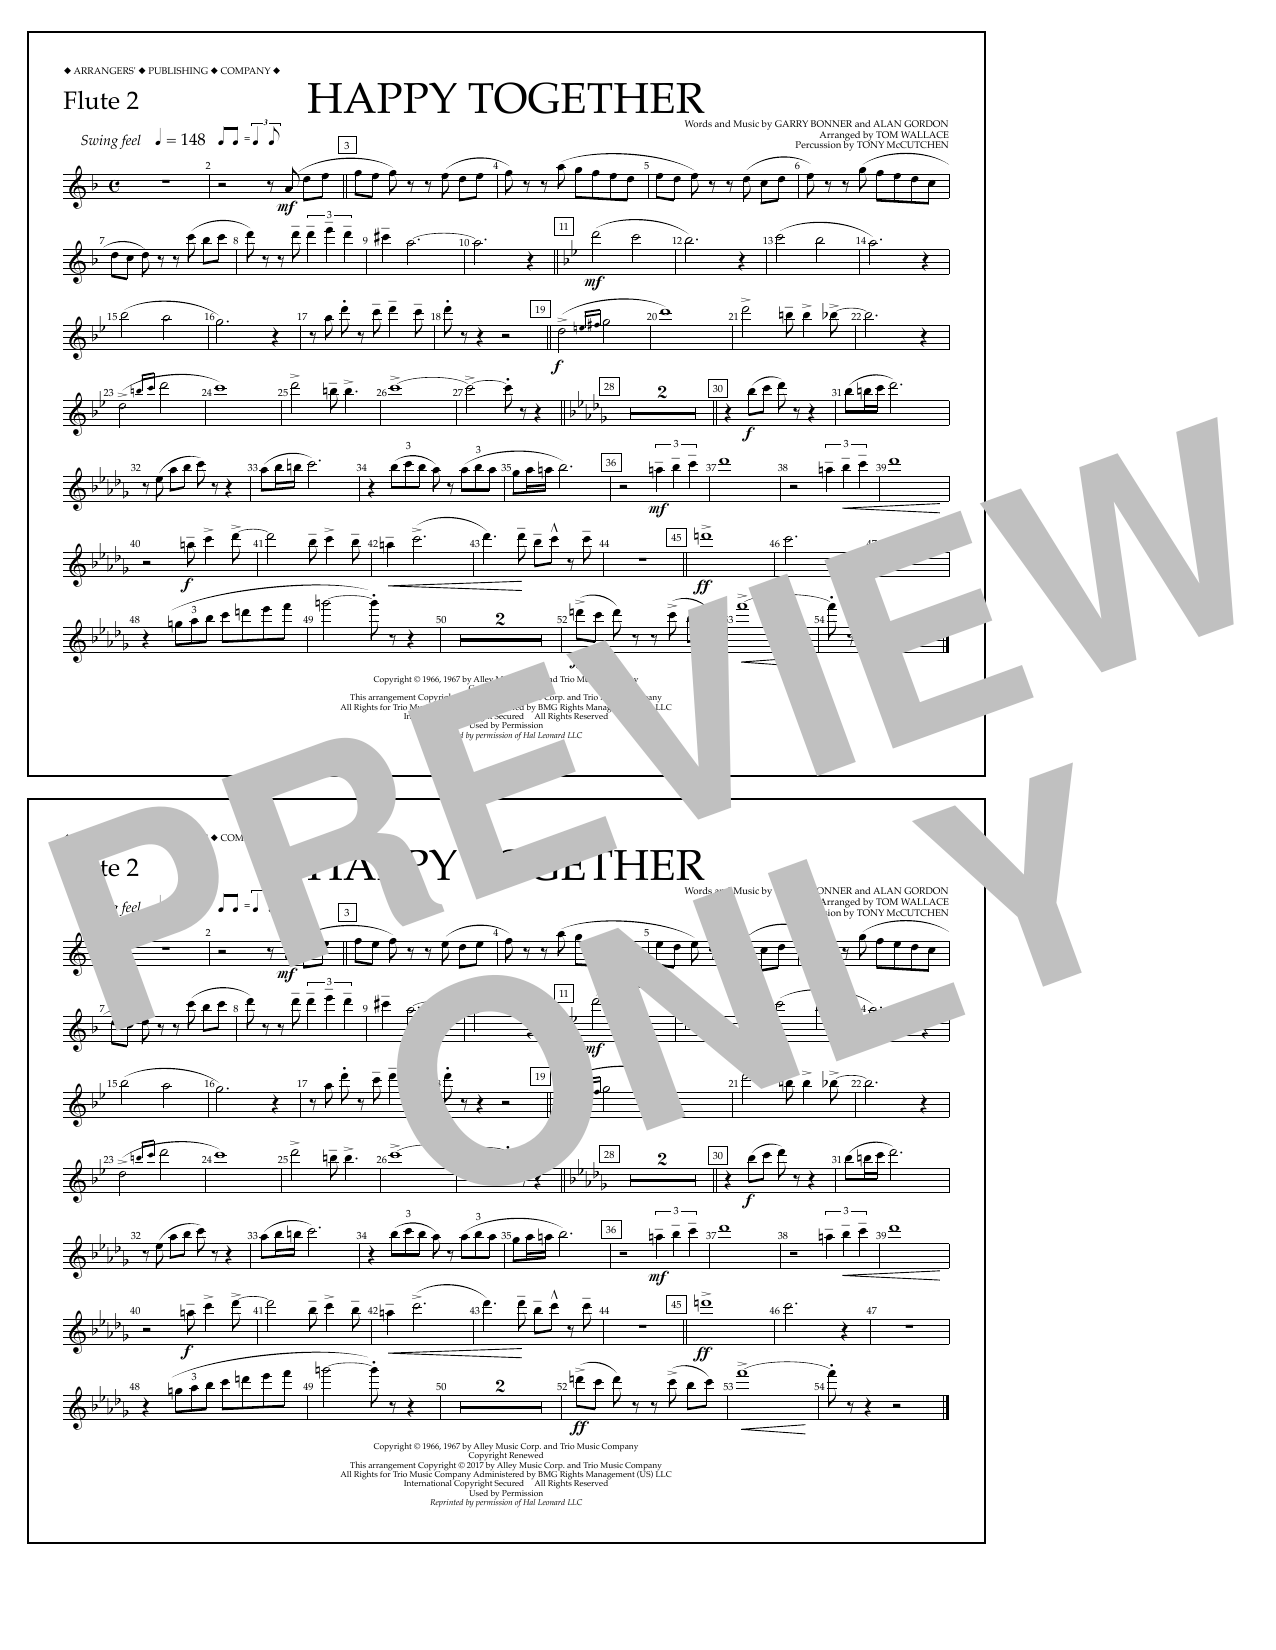 Happy Together - Flute 2 Sheet Music